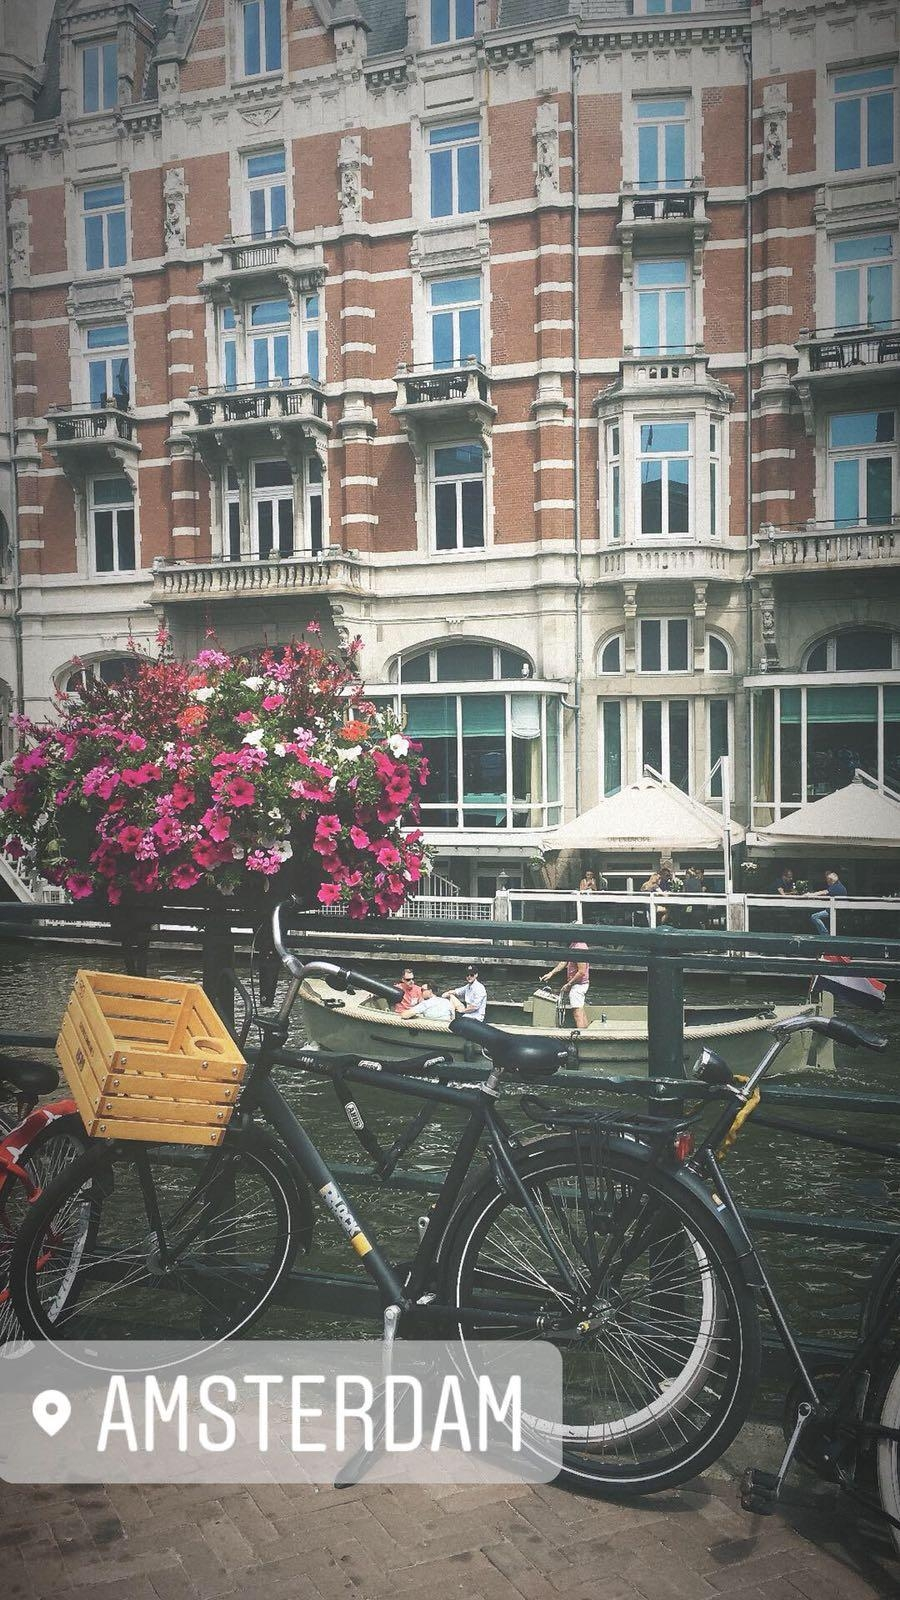 My inspiration Daily...Hello from Amsterdam! #amsterdam #lesswaste #organicskincare #beauty #sustainableliving